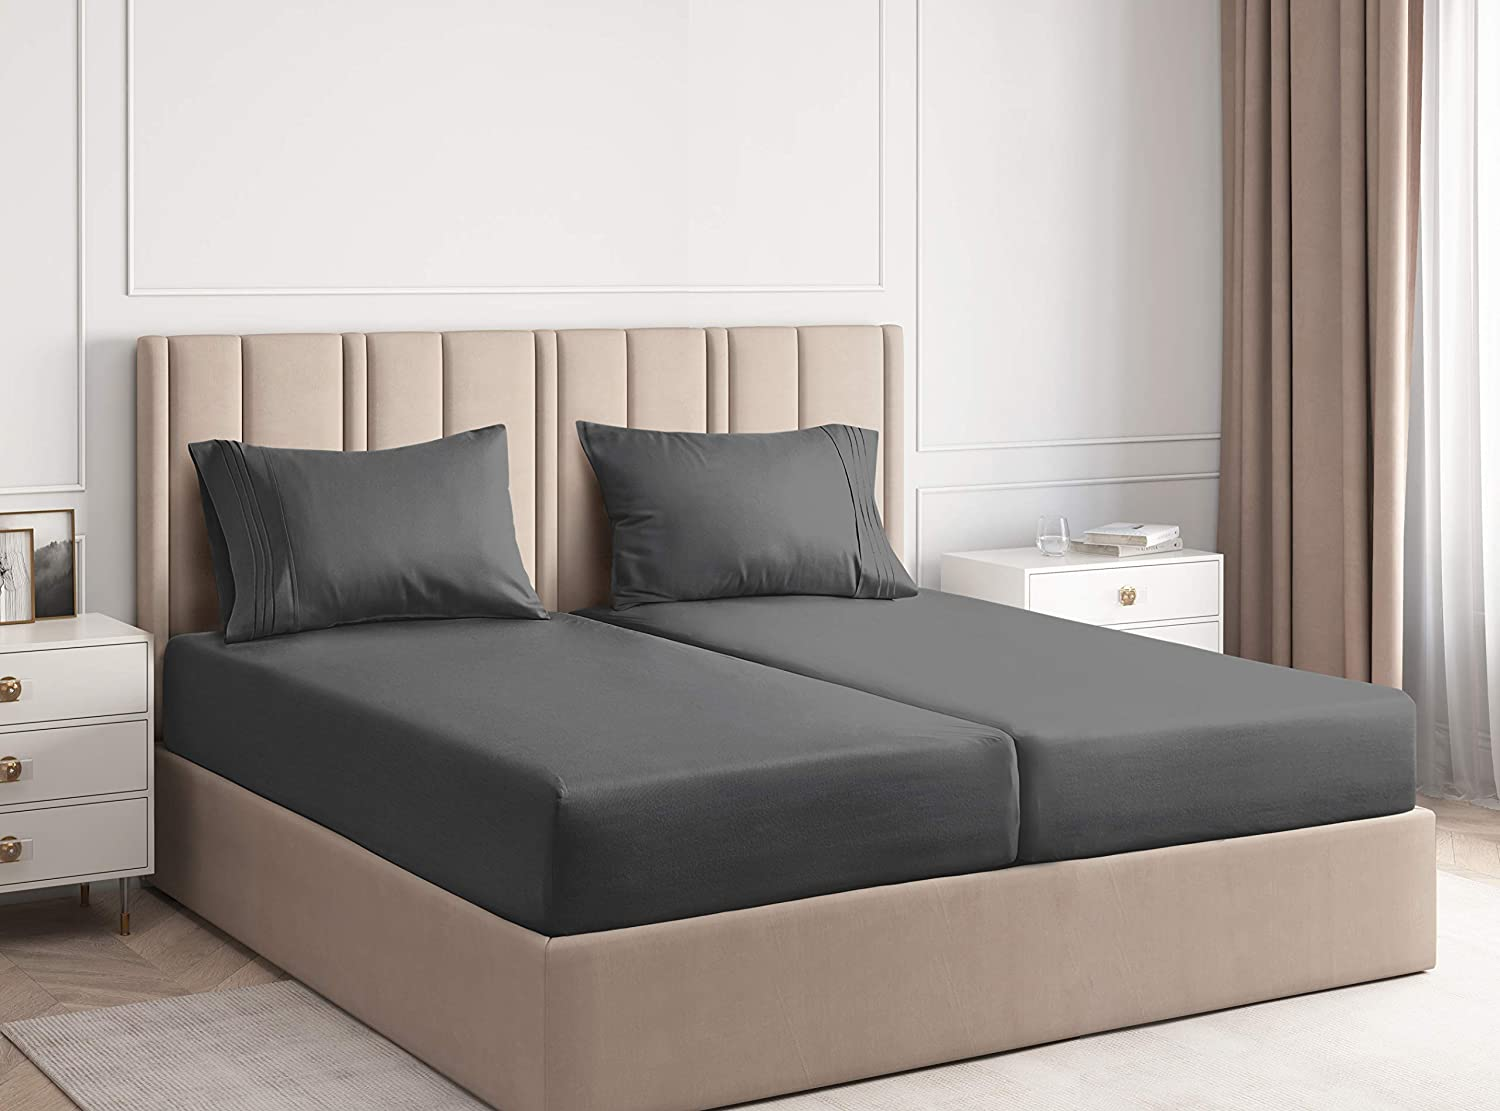 Split King Sheets for Beds Adjustable Be Super beauty product restock Wholesale quality top -